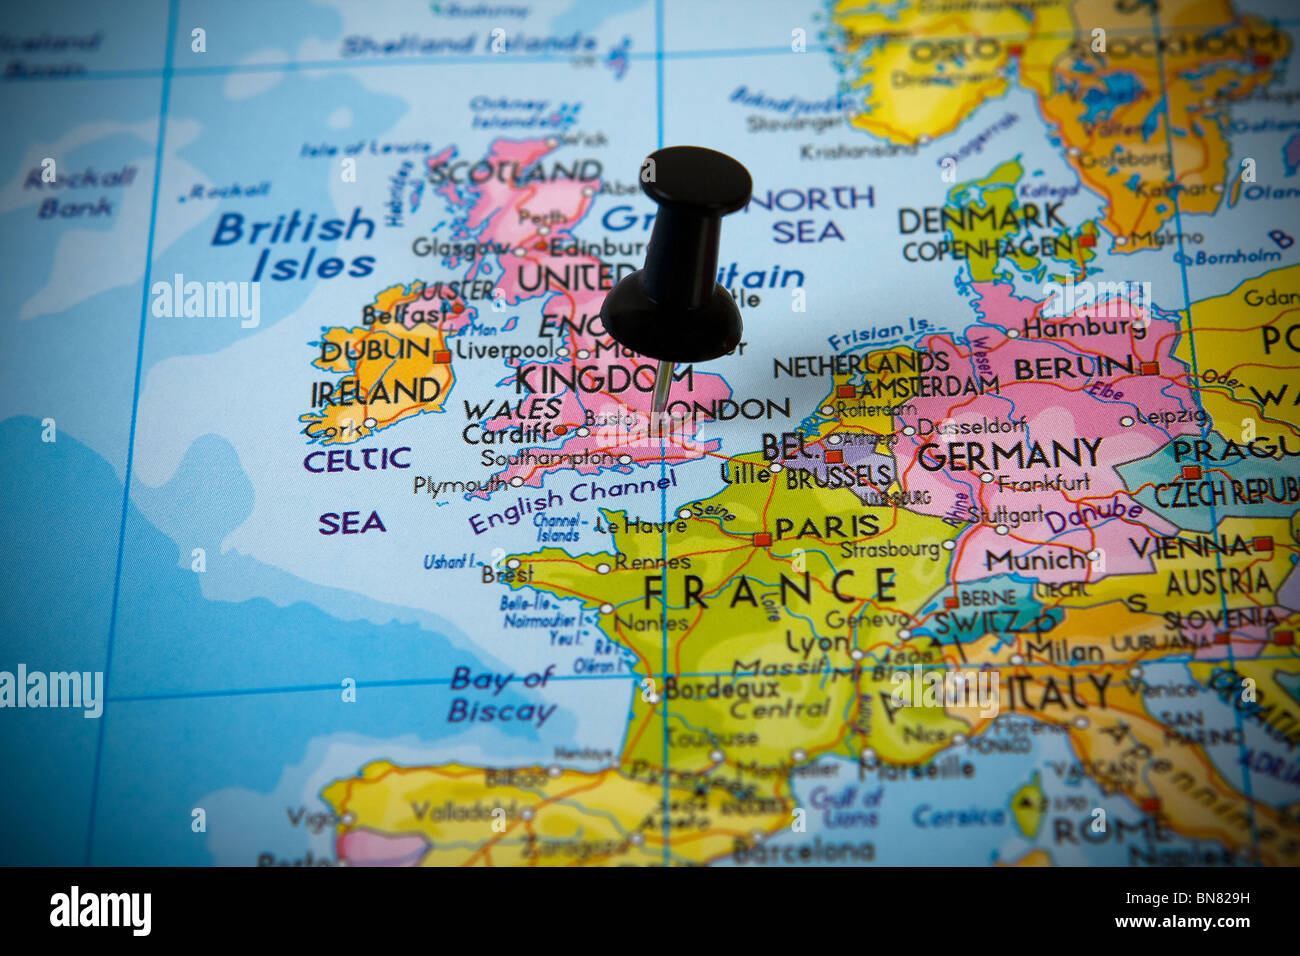 Map Of Europe And The Uk.Small Pin Pointing On London Uk In A Map Of Europe Stock Photo